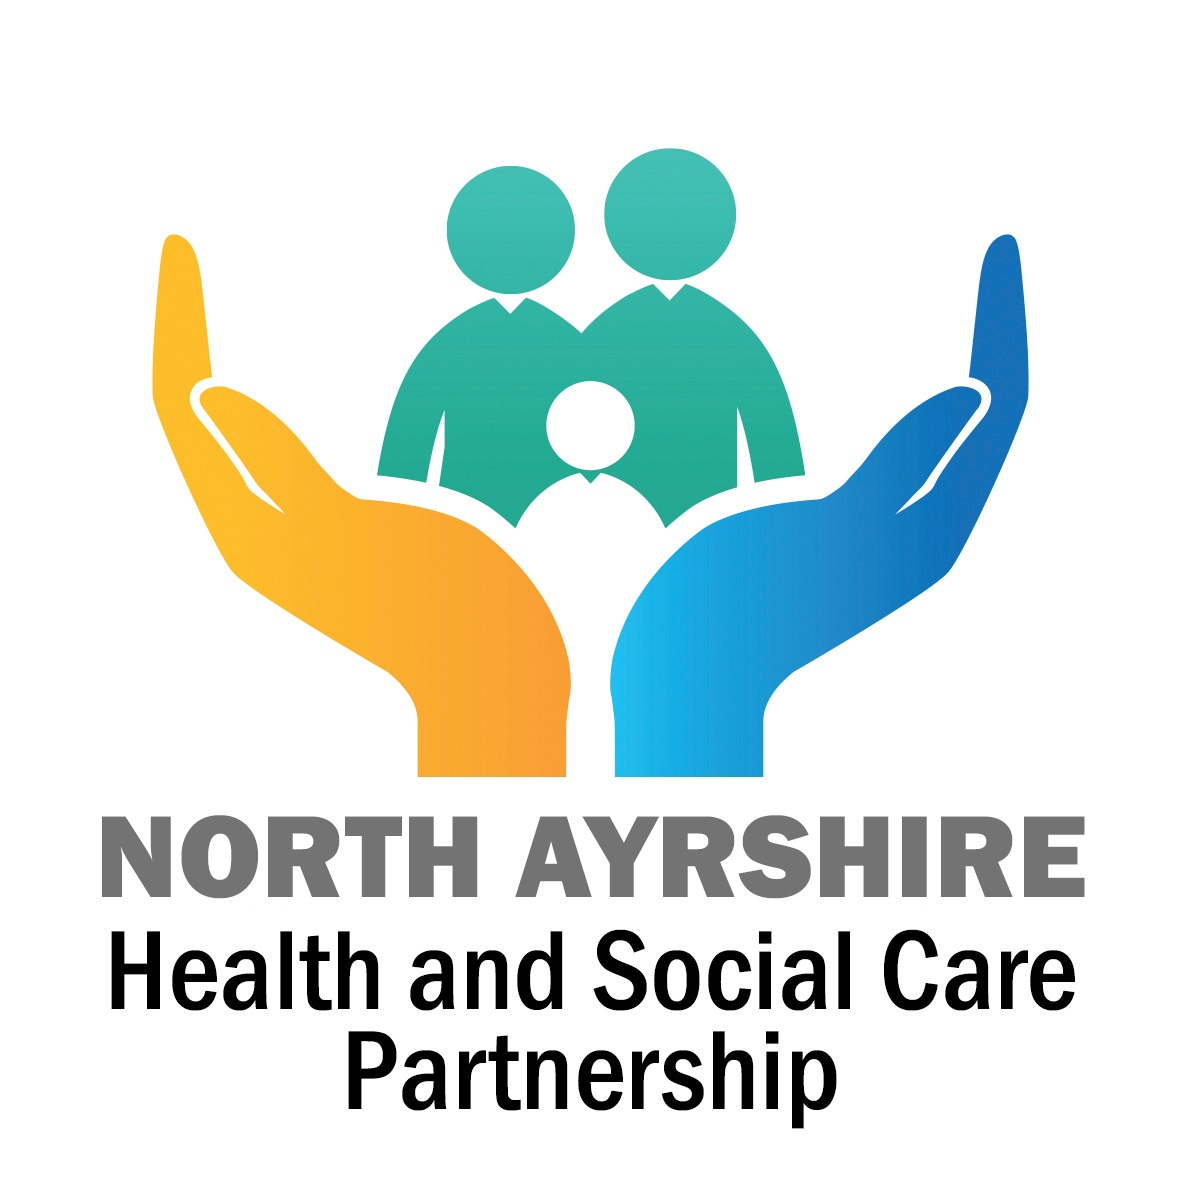 Director of North Ayrshire Health & Social Care Partnership and Head of Service (Health & Community Care)